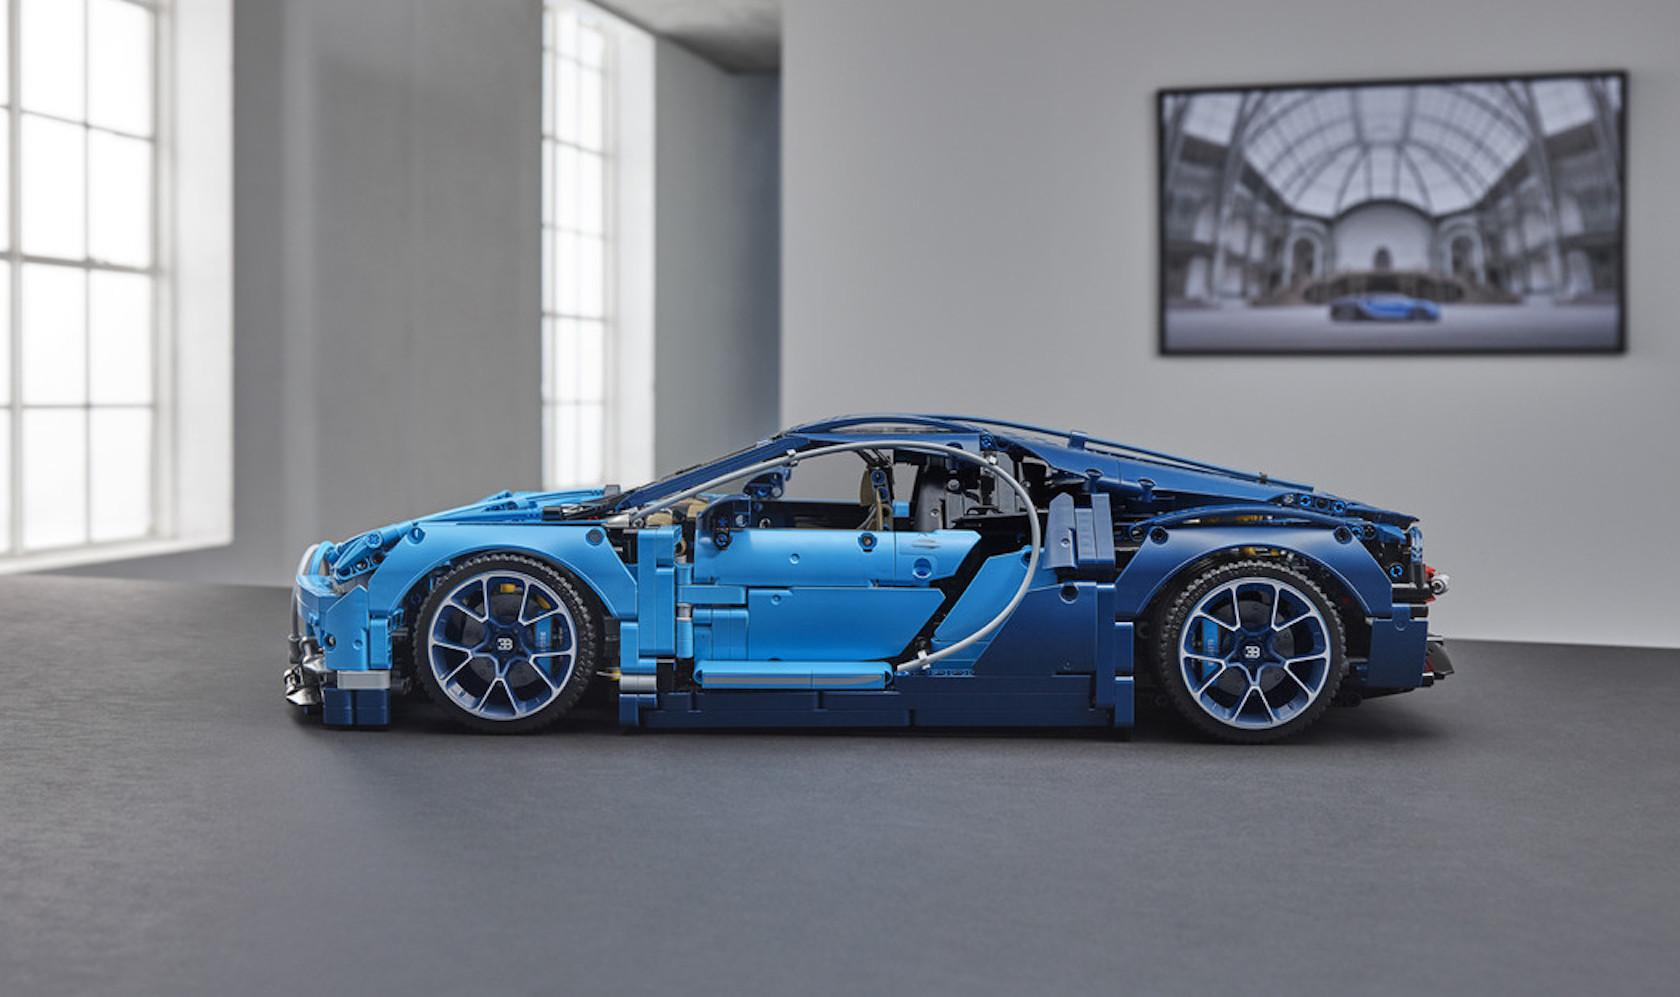 Lego S Bugatti Chiron Is A 3 599 Piece Diy Supercar Slashgear